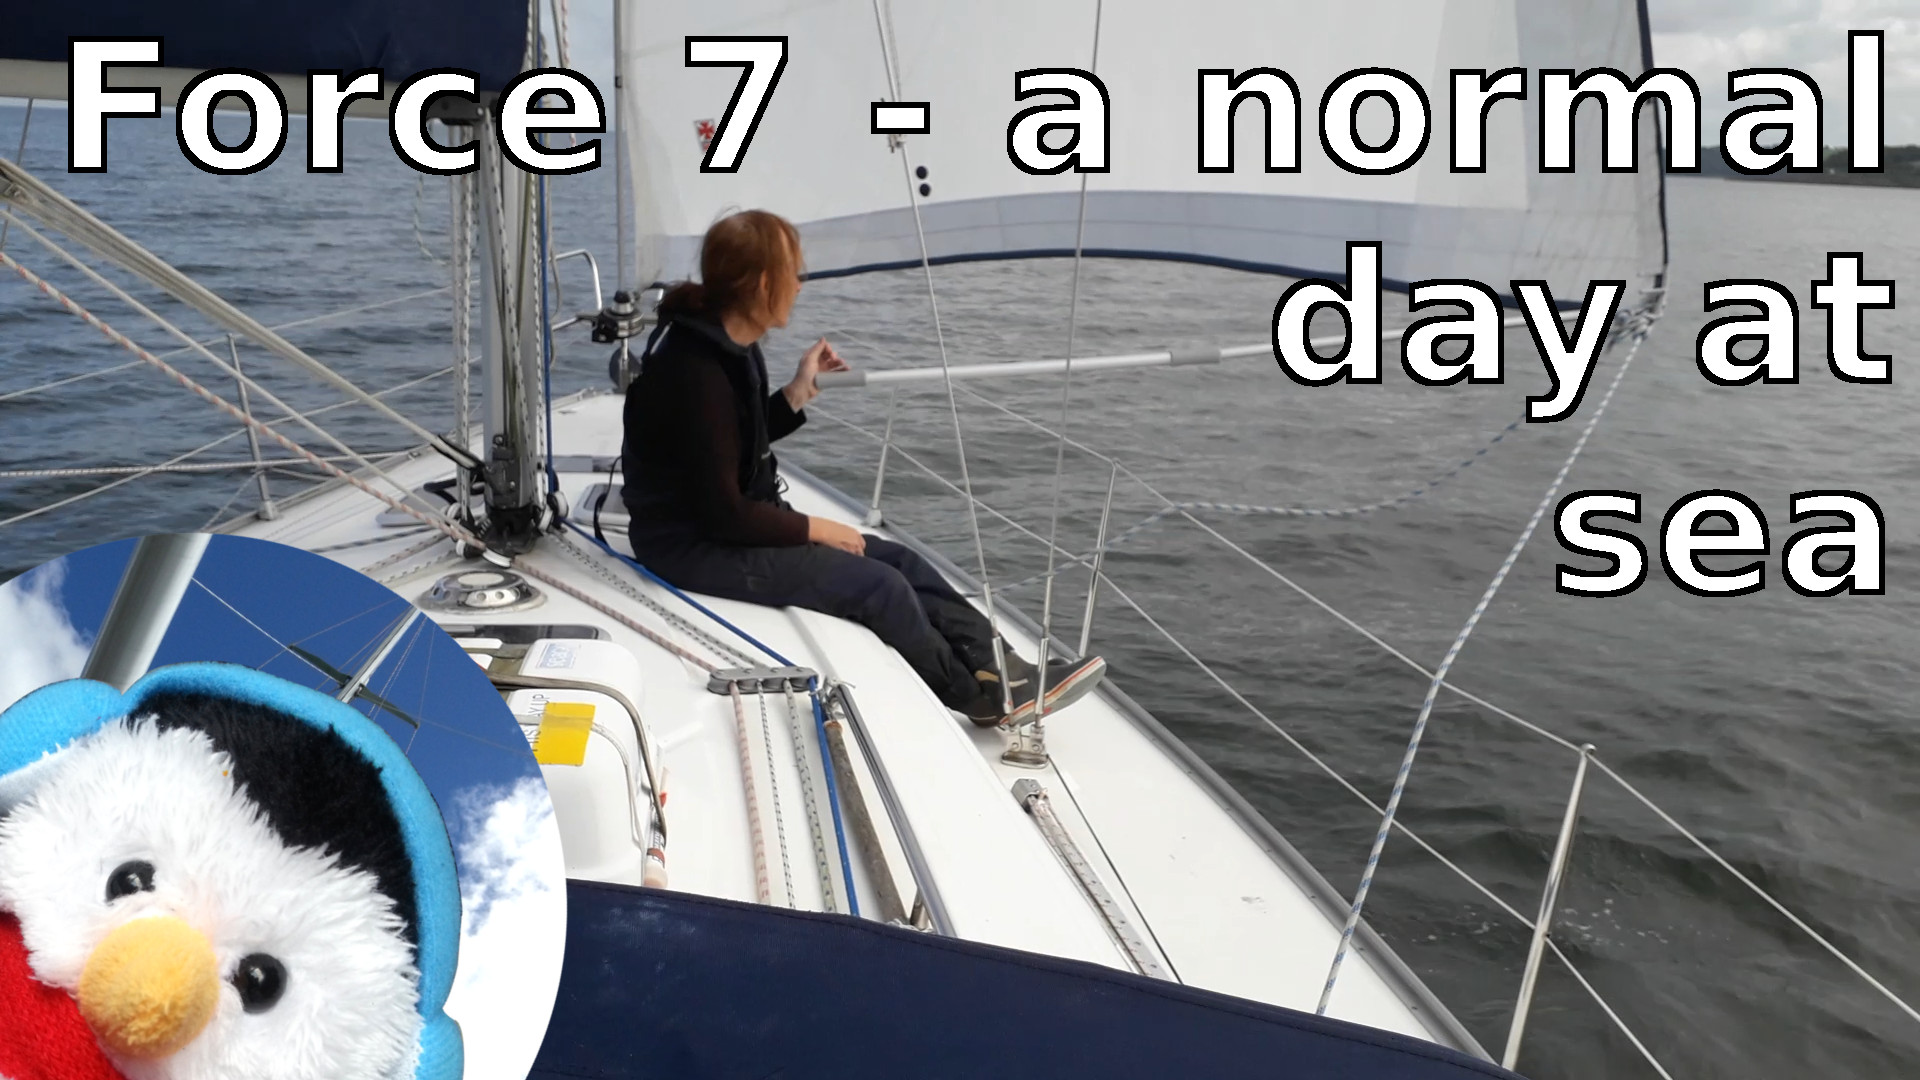 Watch our 'Force 7 - A normal day at sea. video and add comments etc.